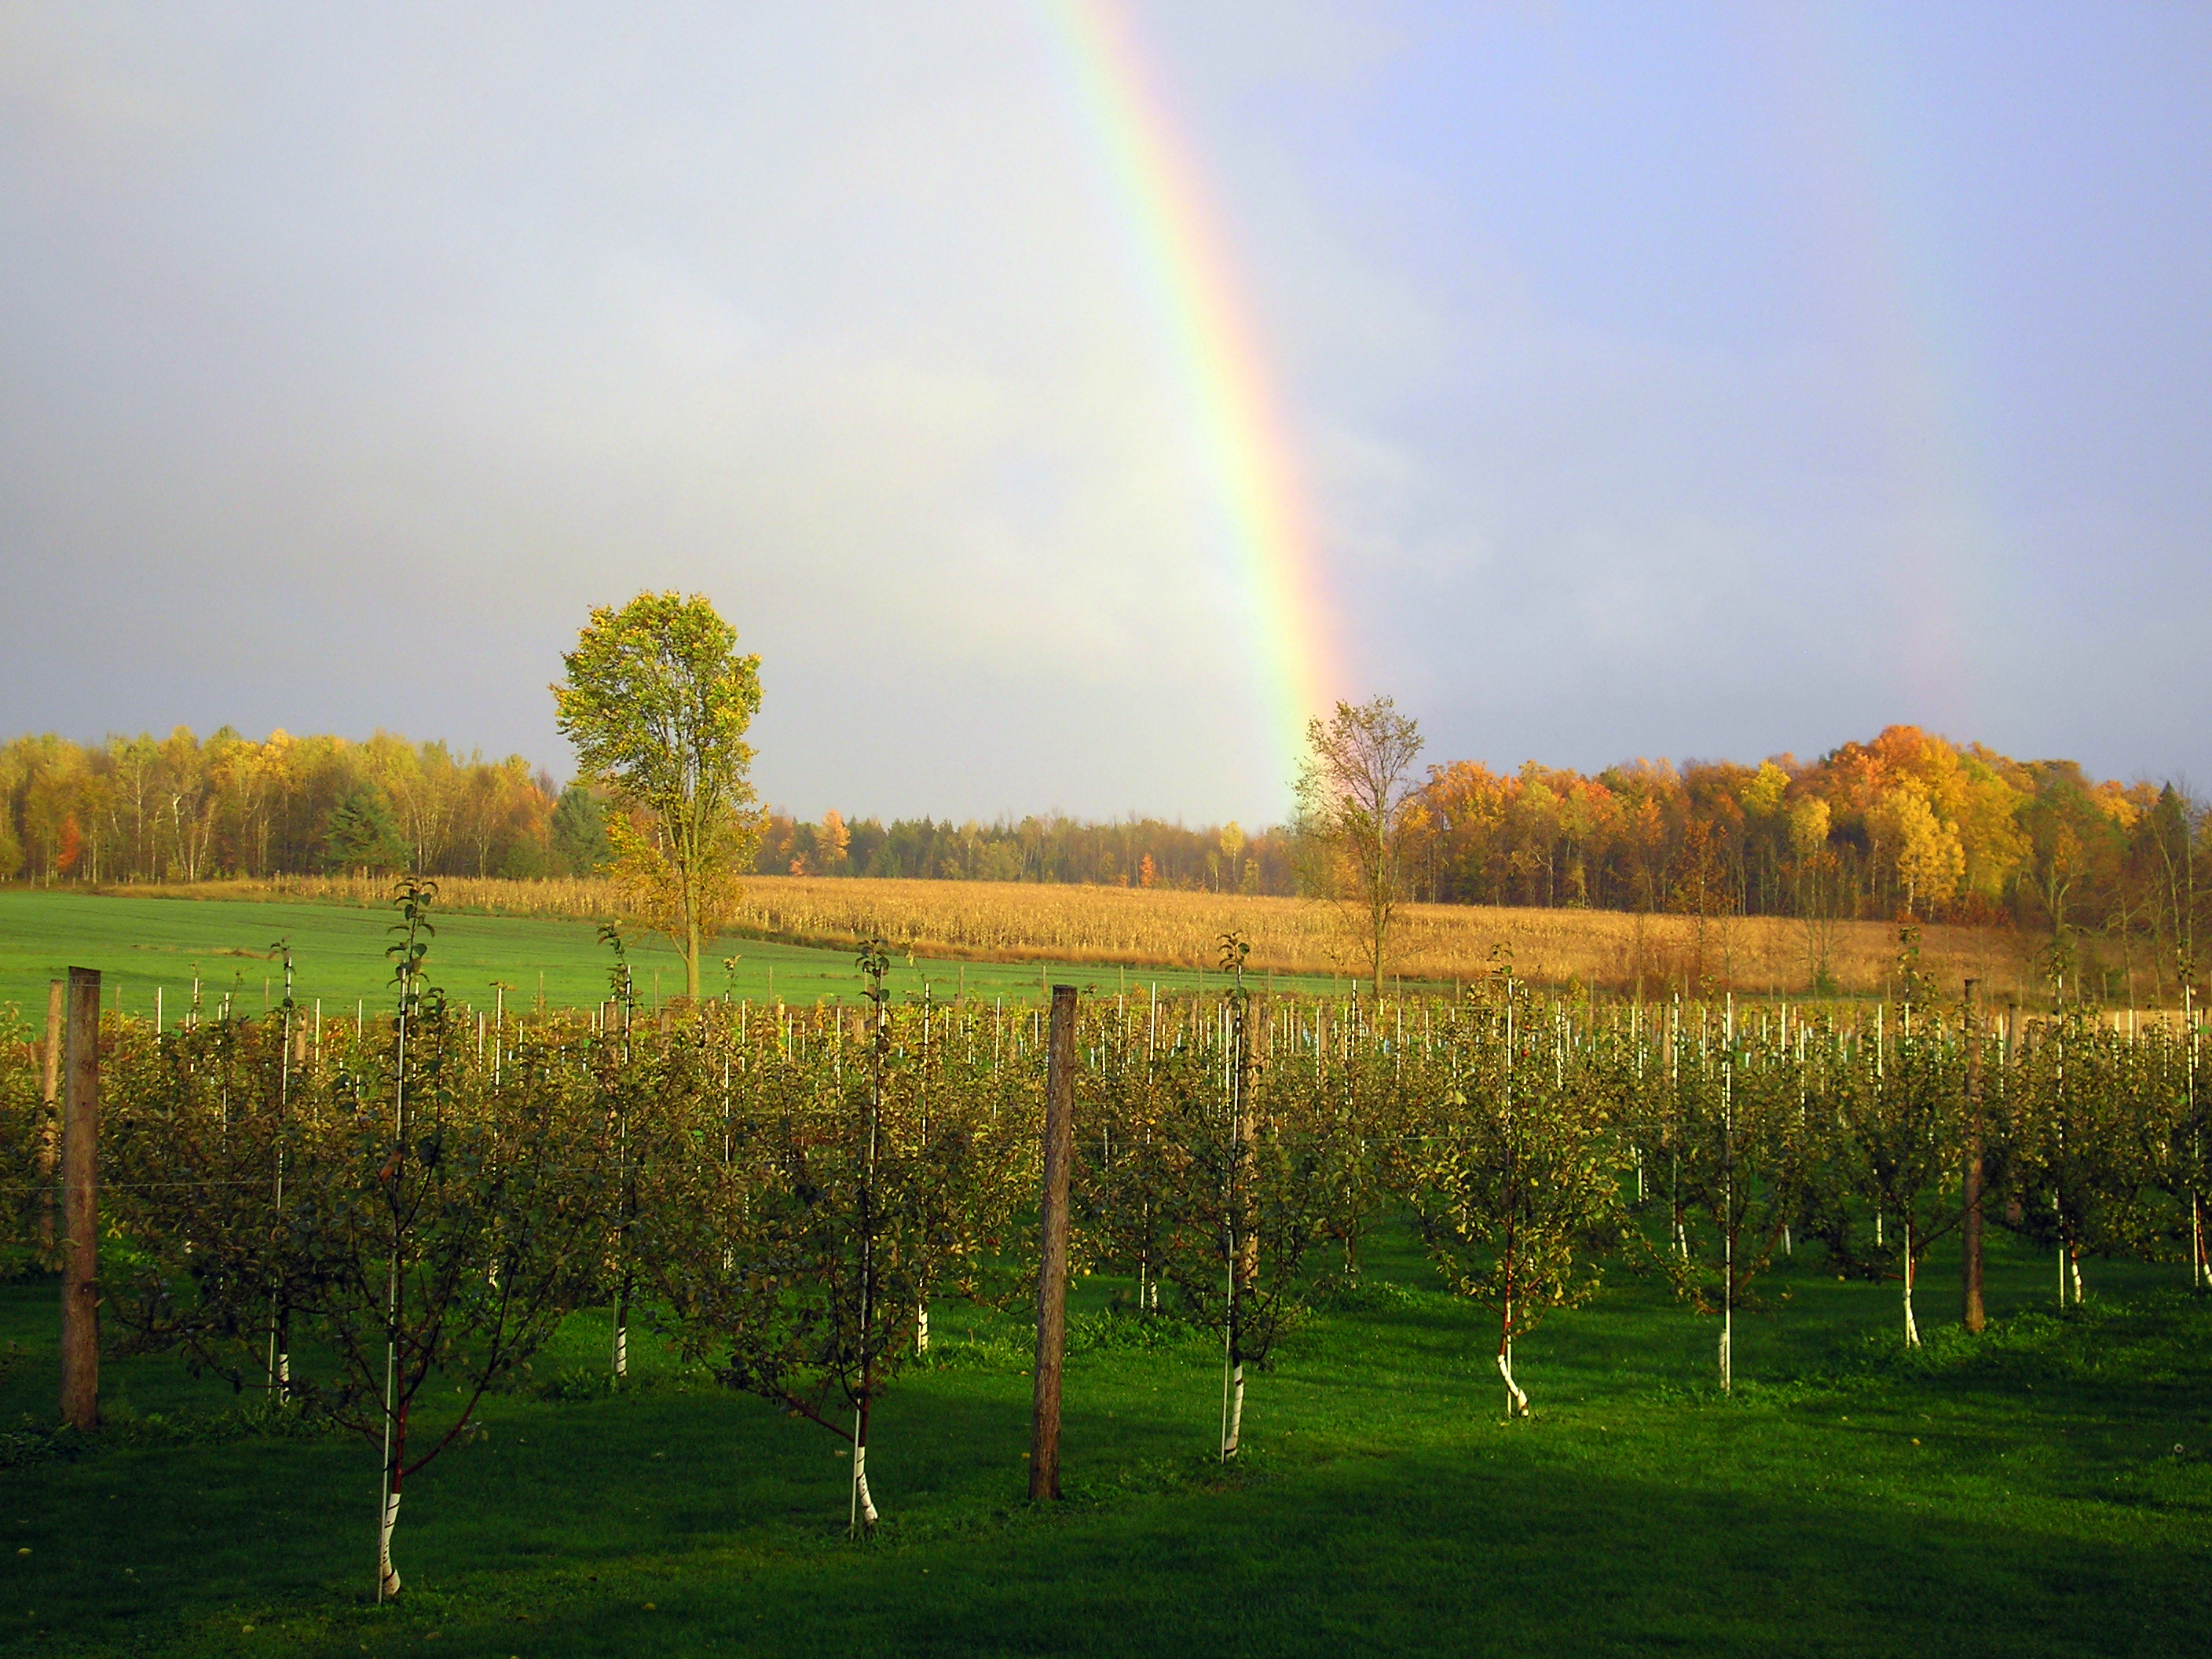 Rainbow over Fobare's Fruits Farm